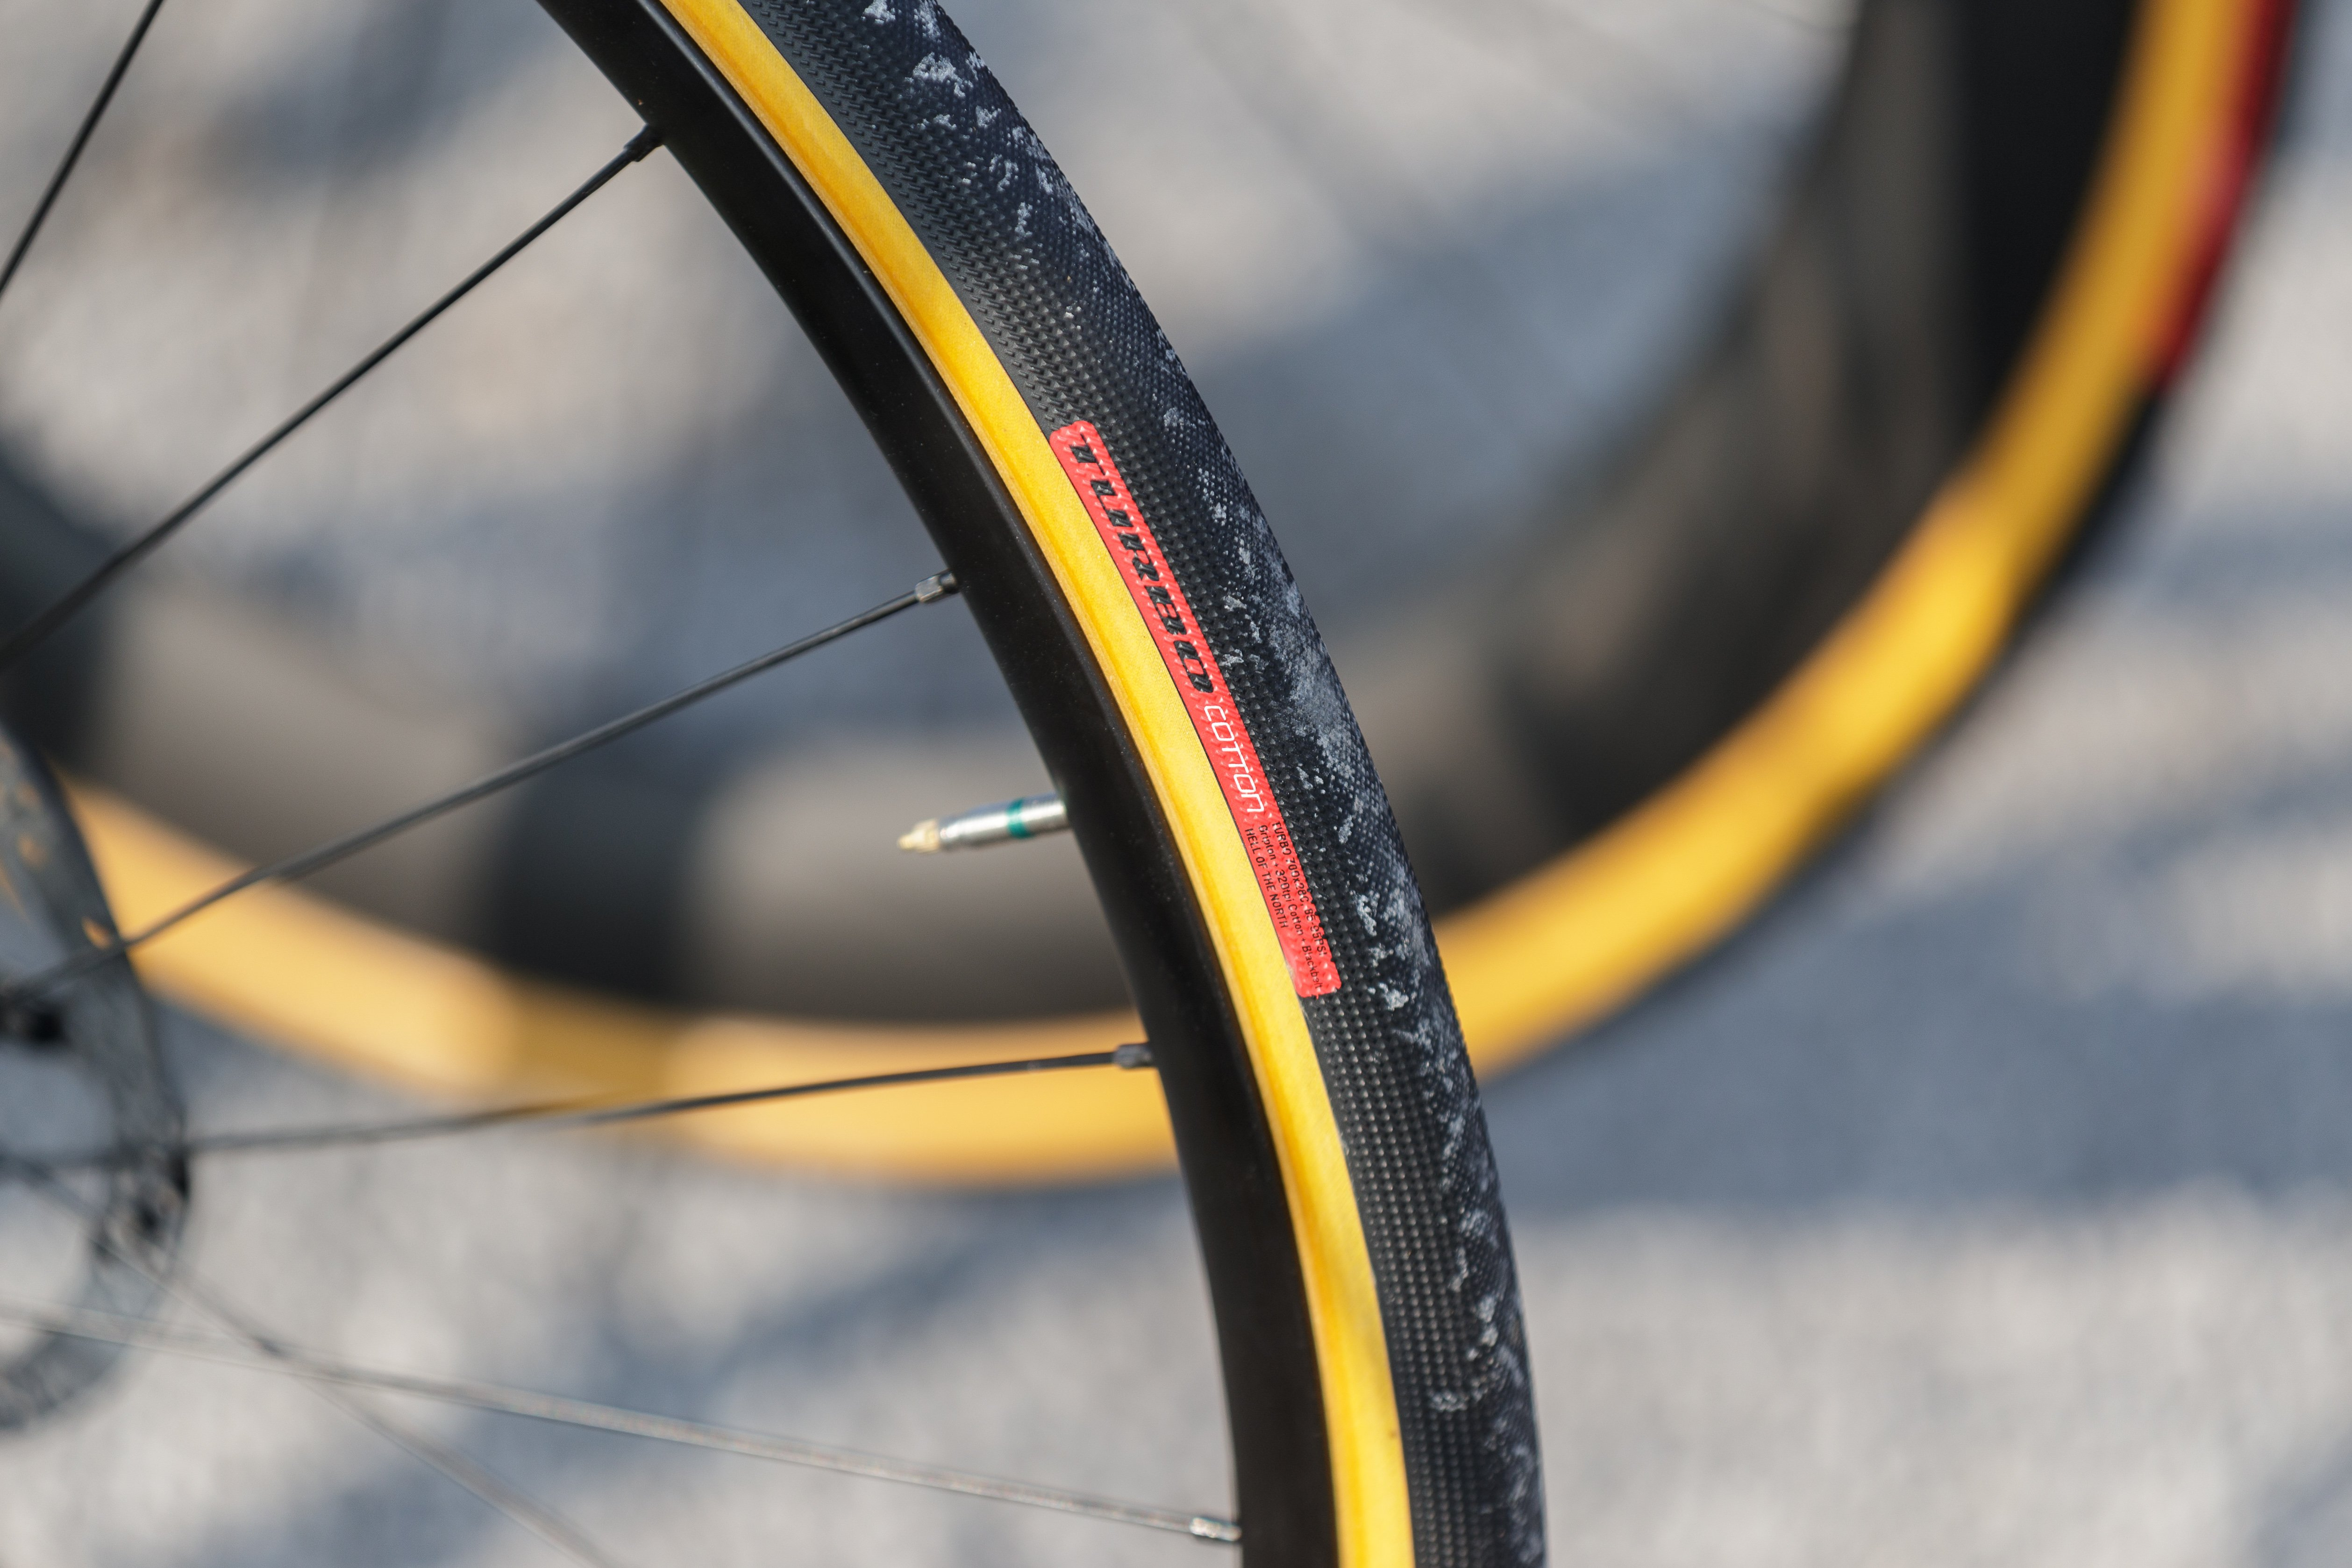 c95d42bd162 Specialized Turbo Cotton tyres review | Cyclist